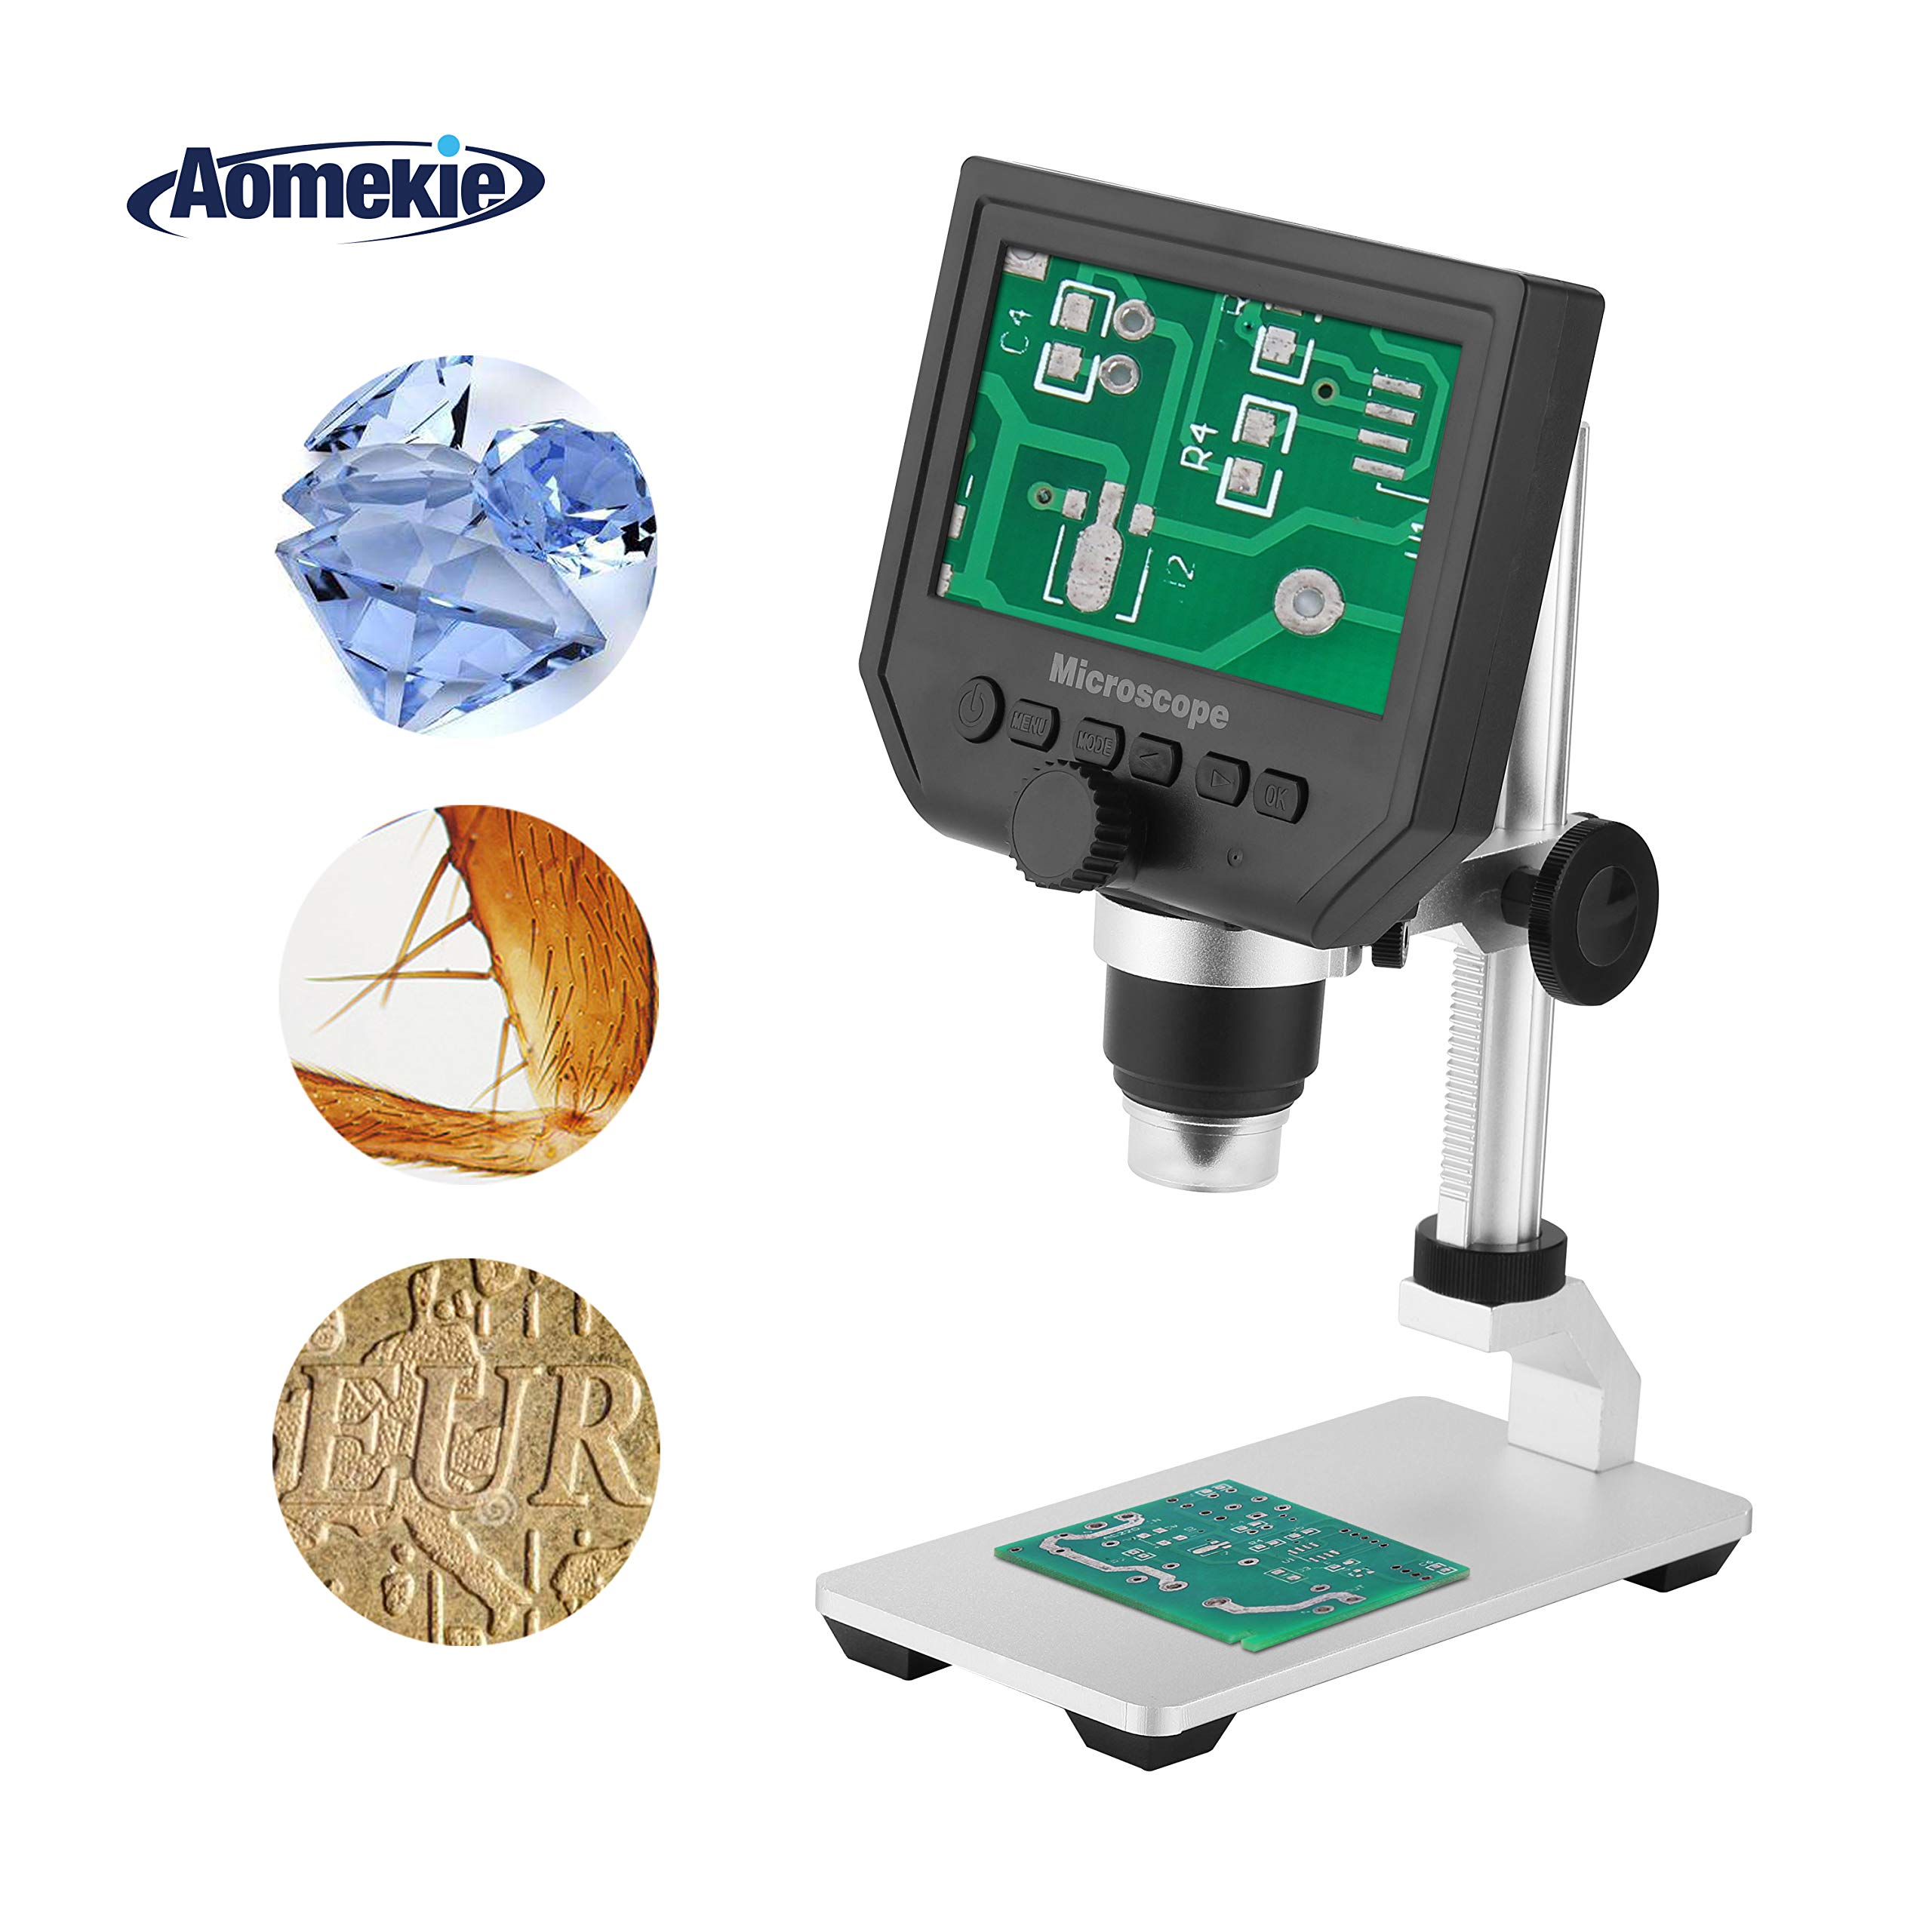 Aomekie LCD Digital Microscope with 4.3'' Screen 1080P Soldering Microscopes 1-600X Zoom with 8 LED Adjustable Light and Rechargeable Lithium Battery for Cellphone PC Circuit Board SMD Repair by AOMEKIE